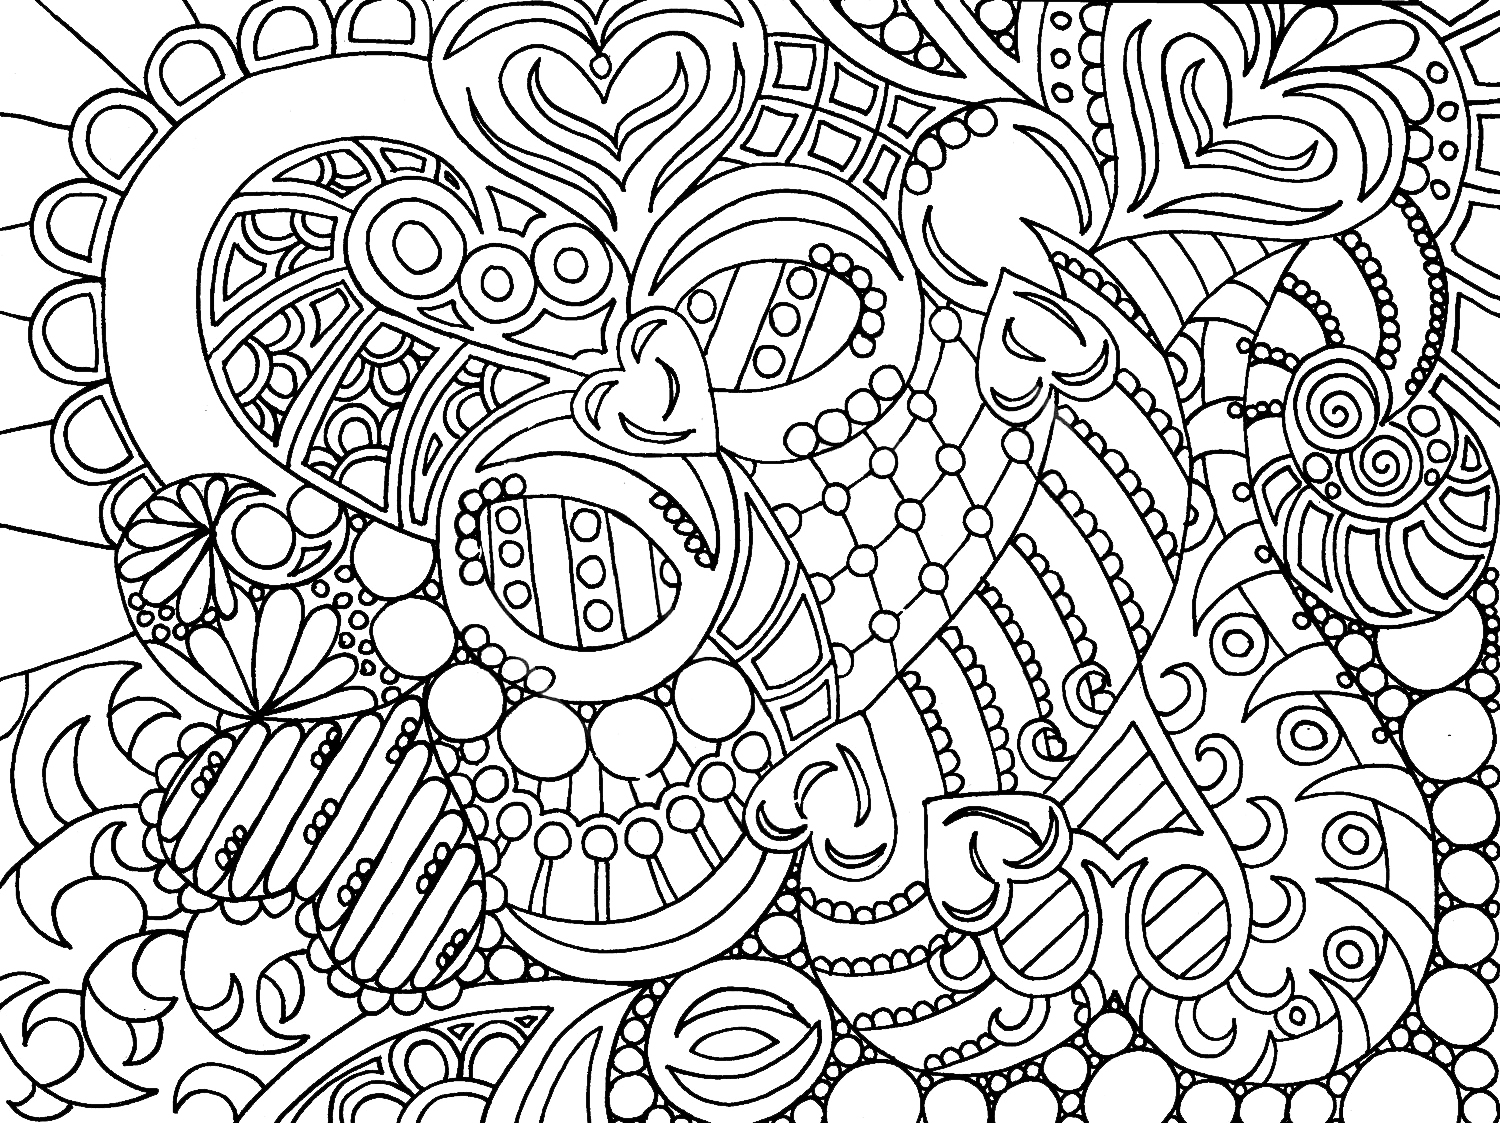 Free coloring pages for adults only coloring pages for Coloring pages t